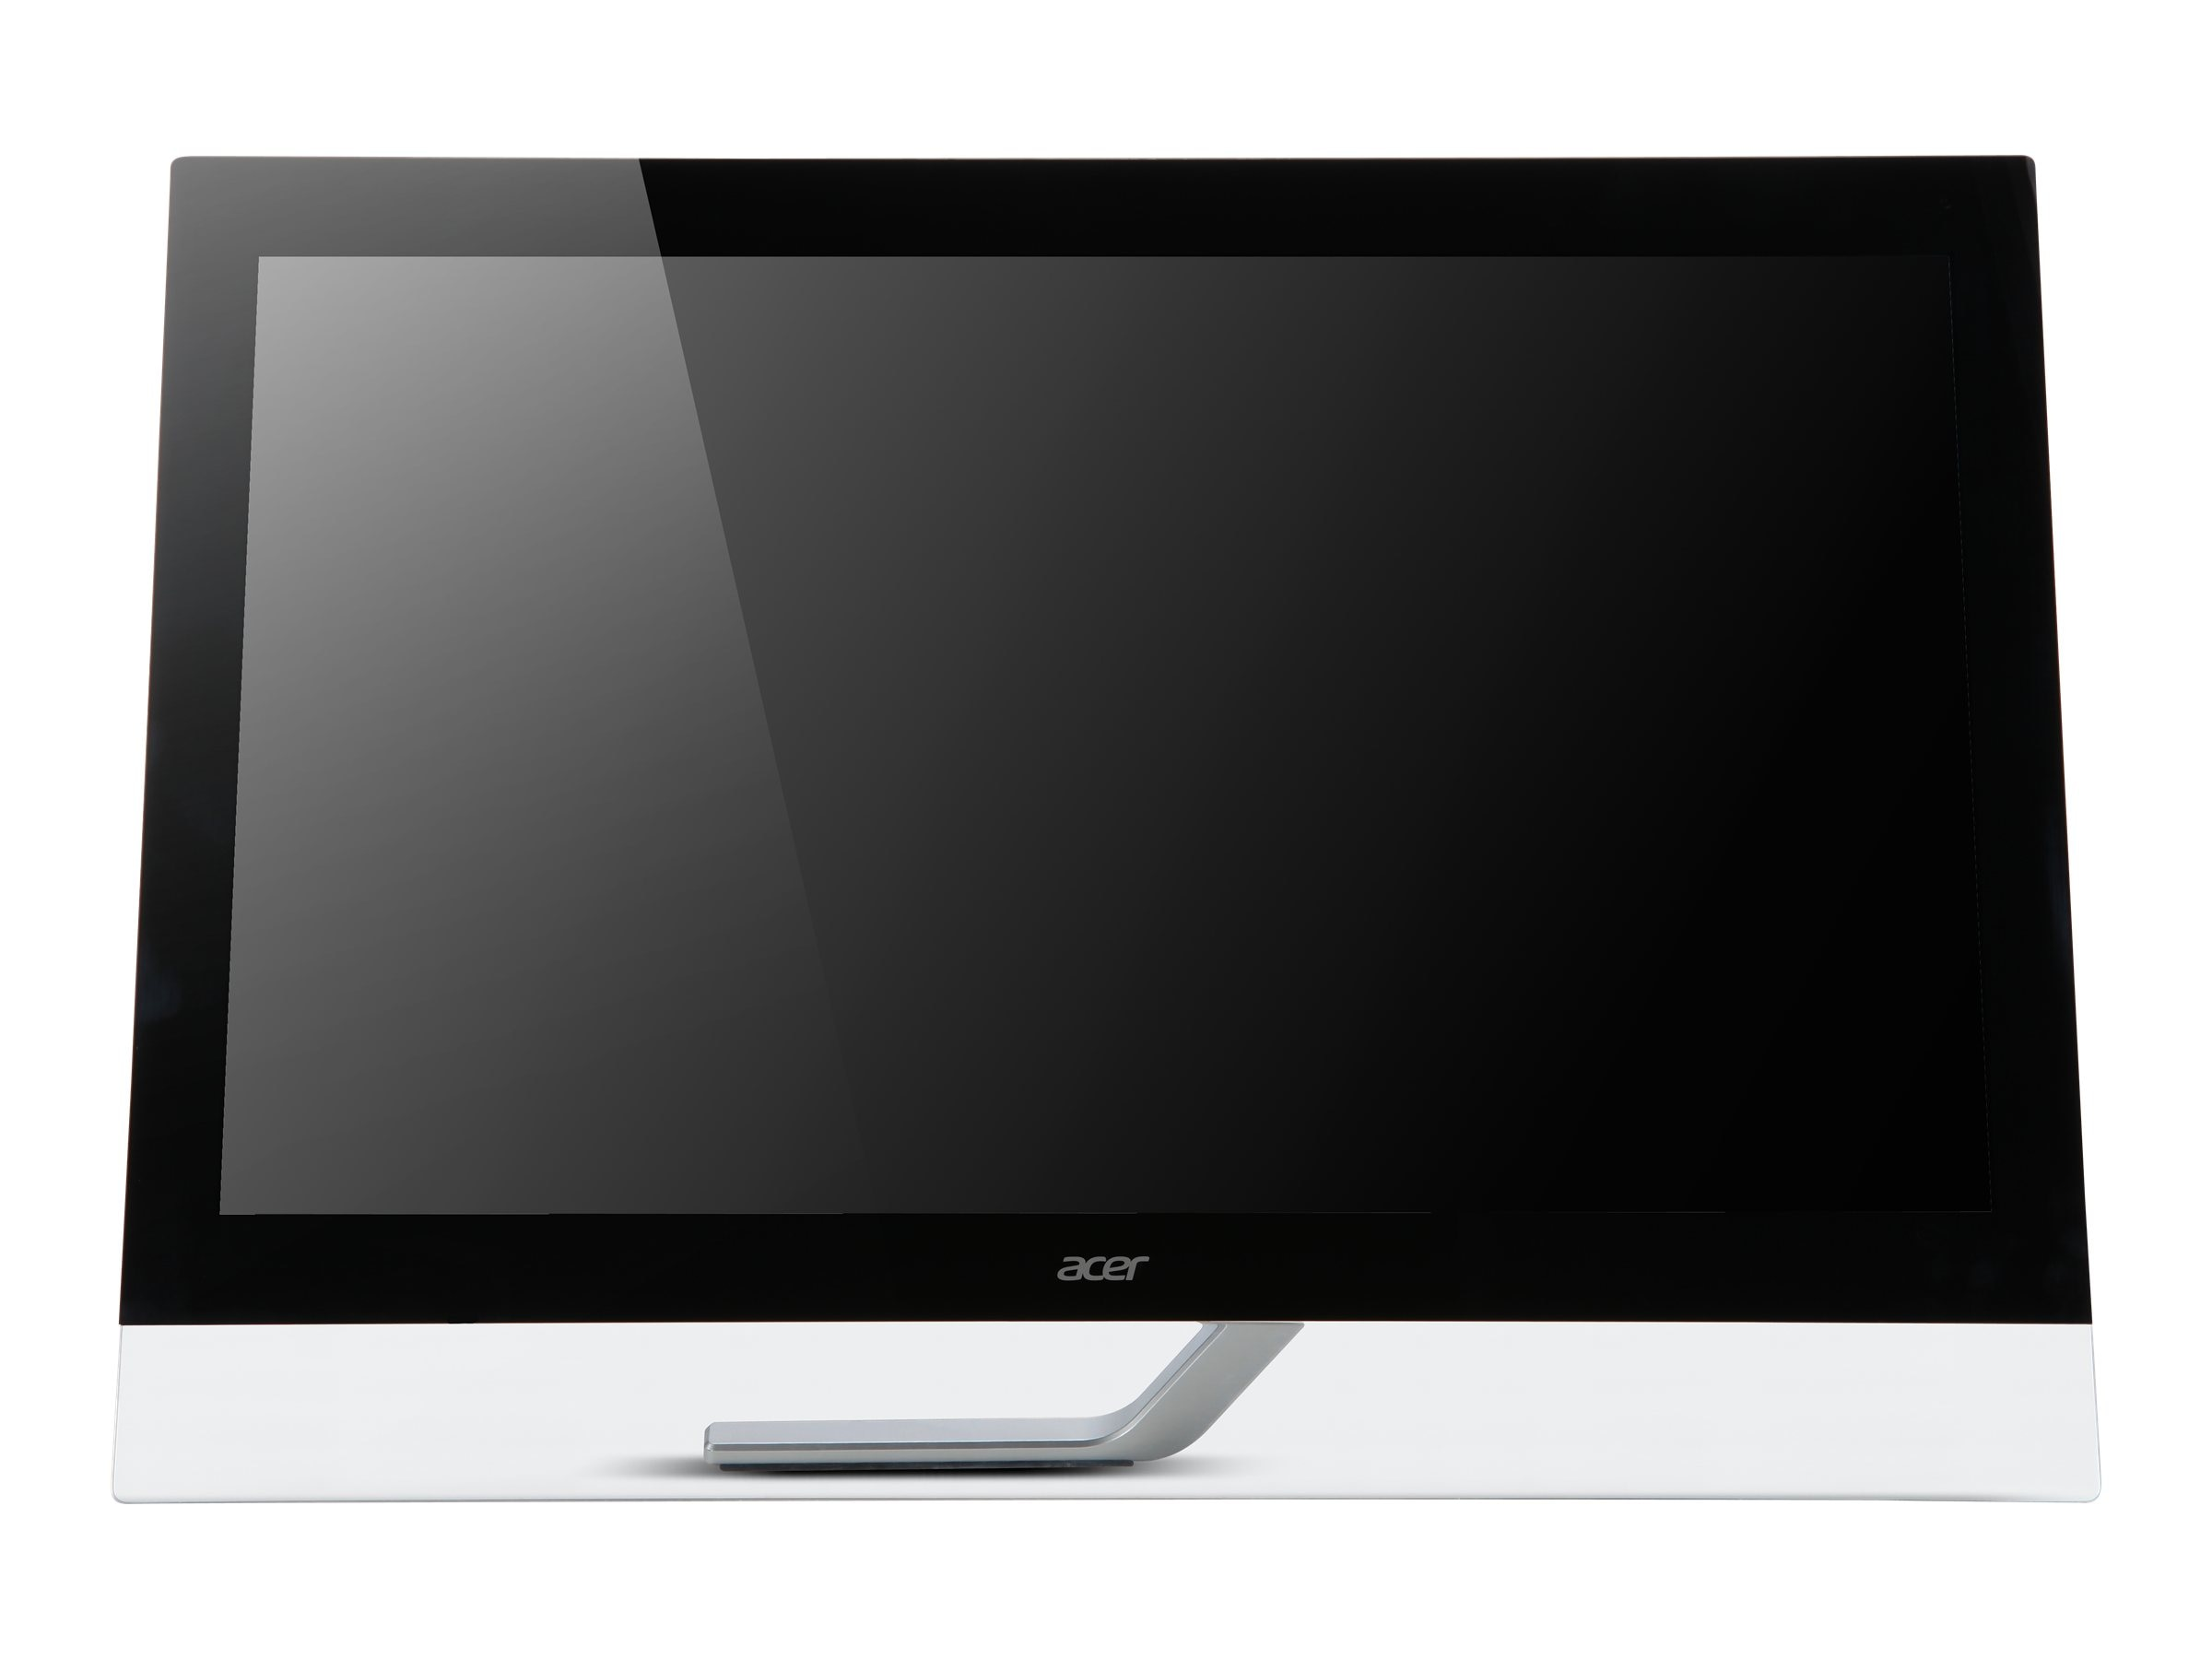 Acer 27 T272HUL bmidpcz LED-LCD Touchscreen Monitor, Black, UM.HT2AA.002, 16221684, Monitors - LED-LCD